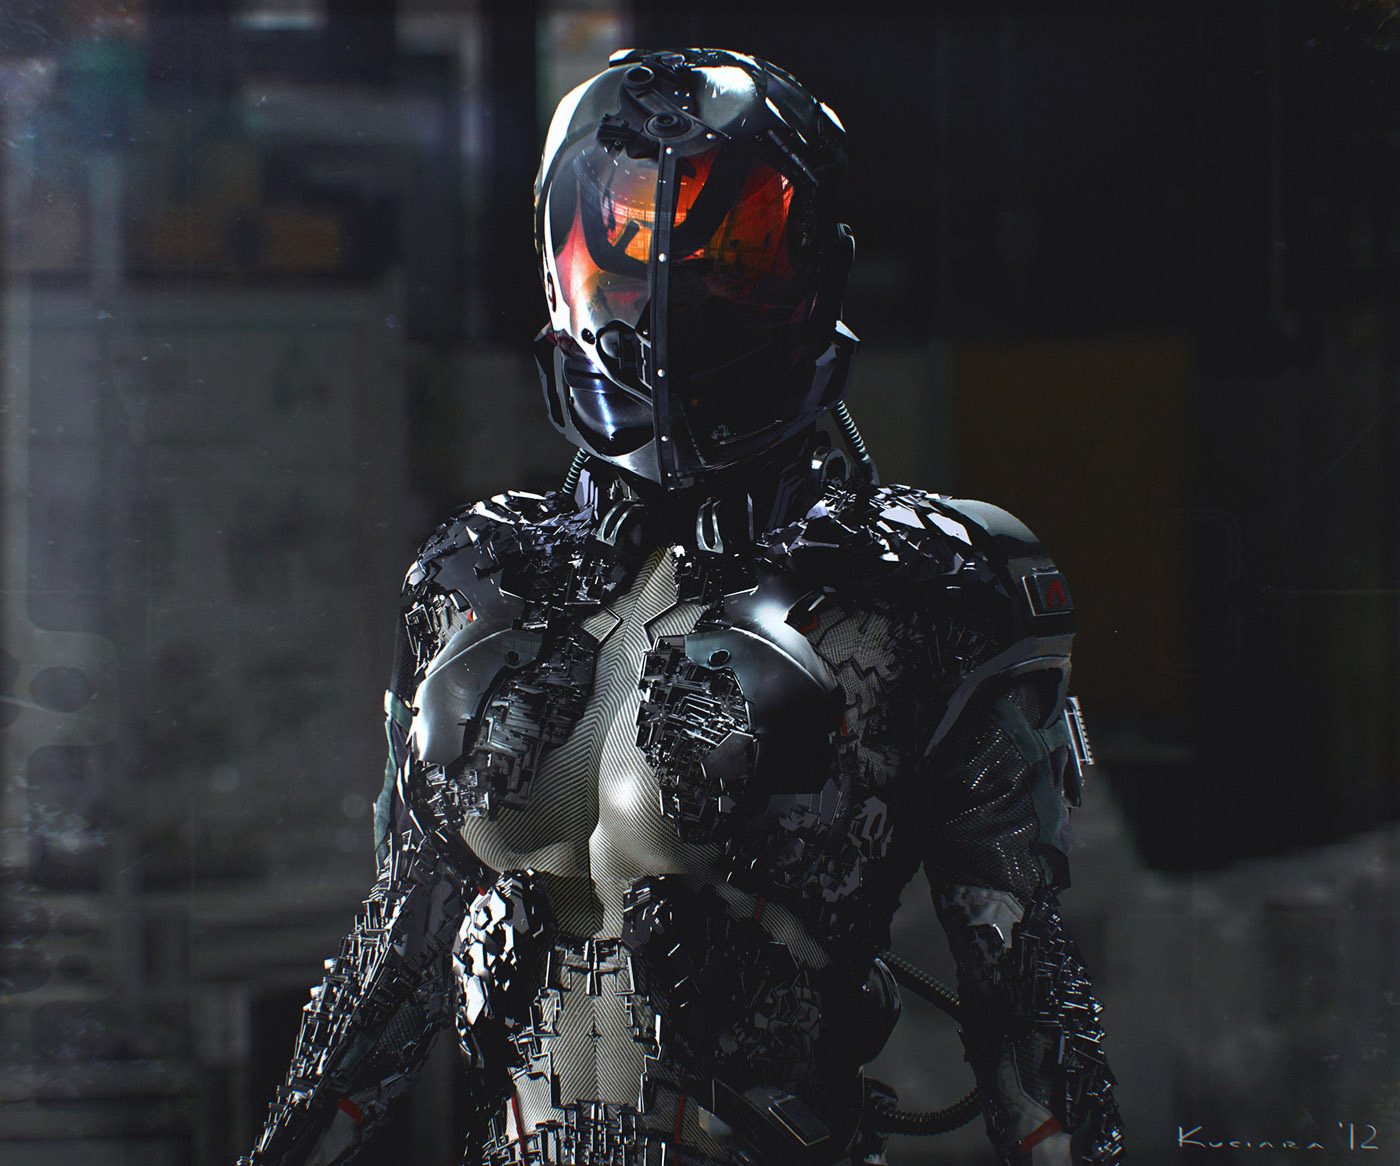 the incredible art of maciej kuciara who s worked on the